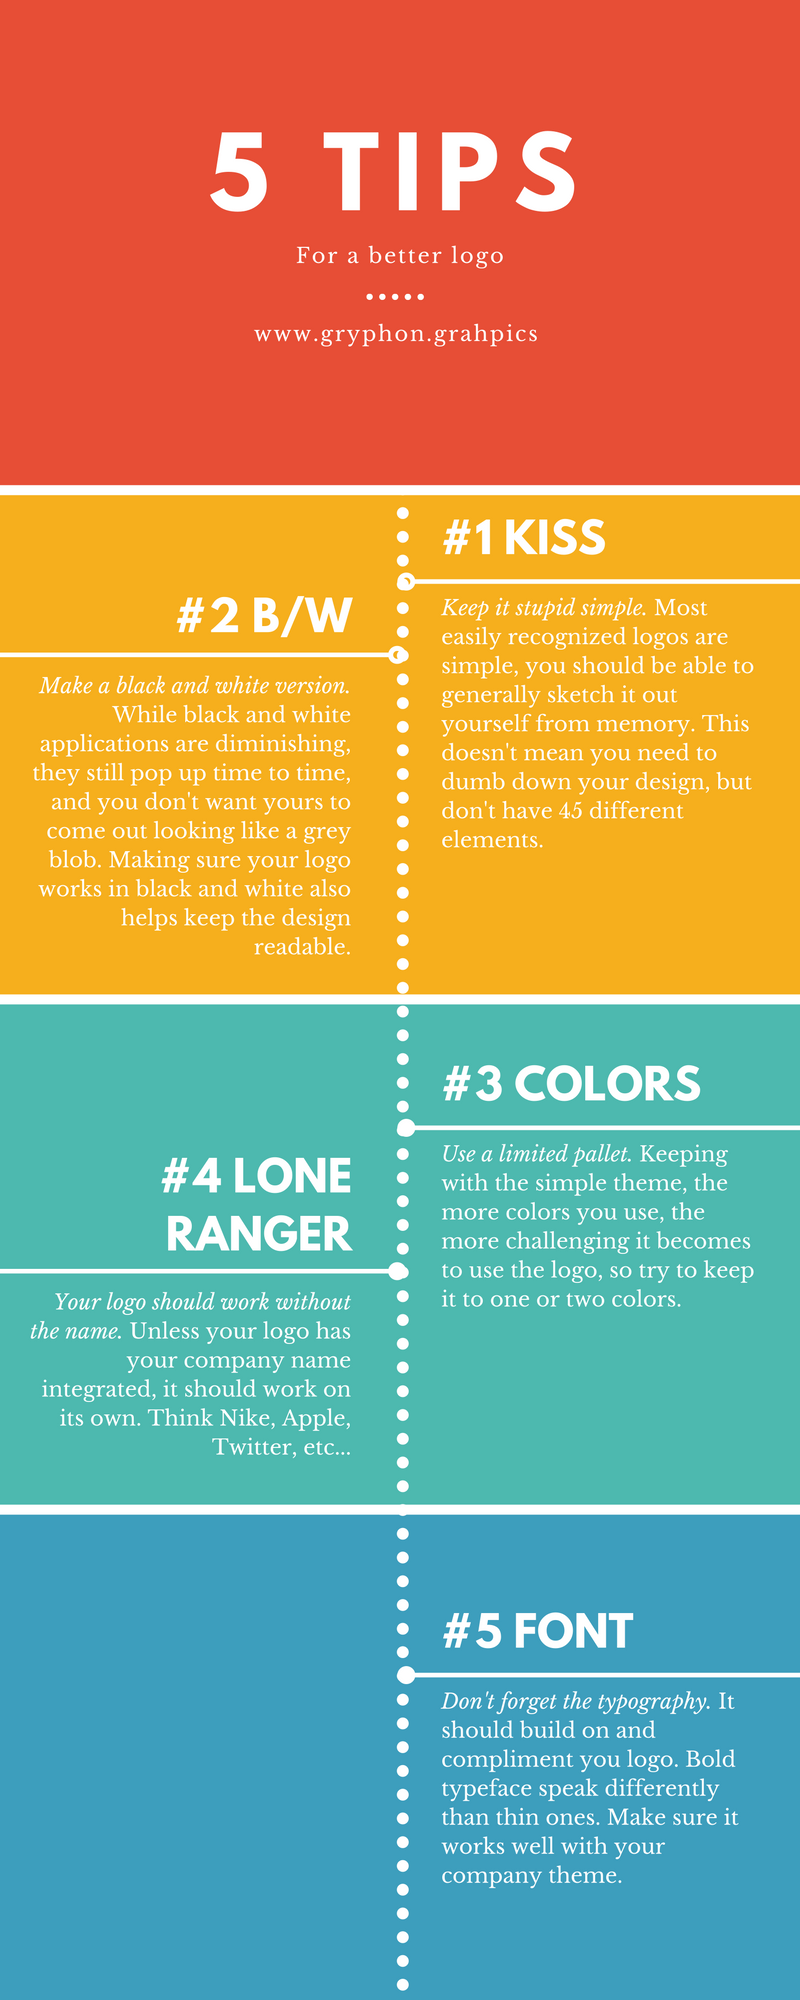 5-tips-for-a-better-logo-infographic